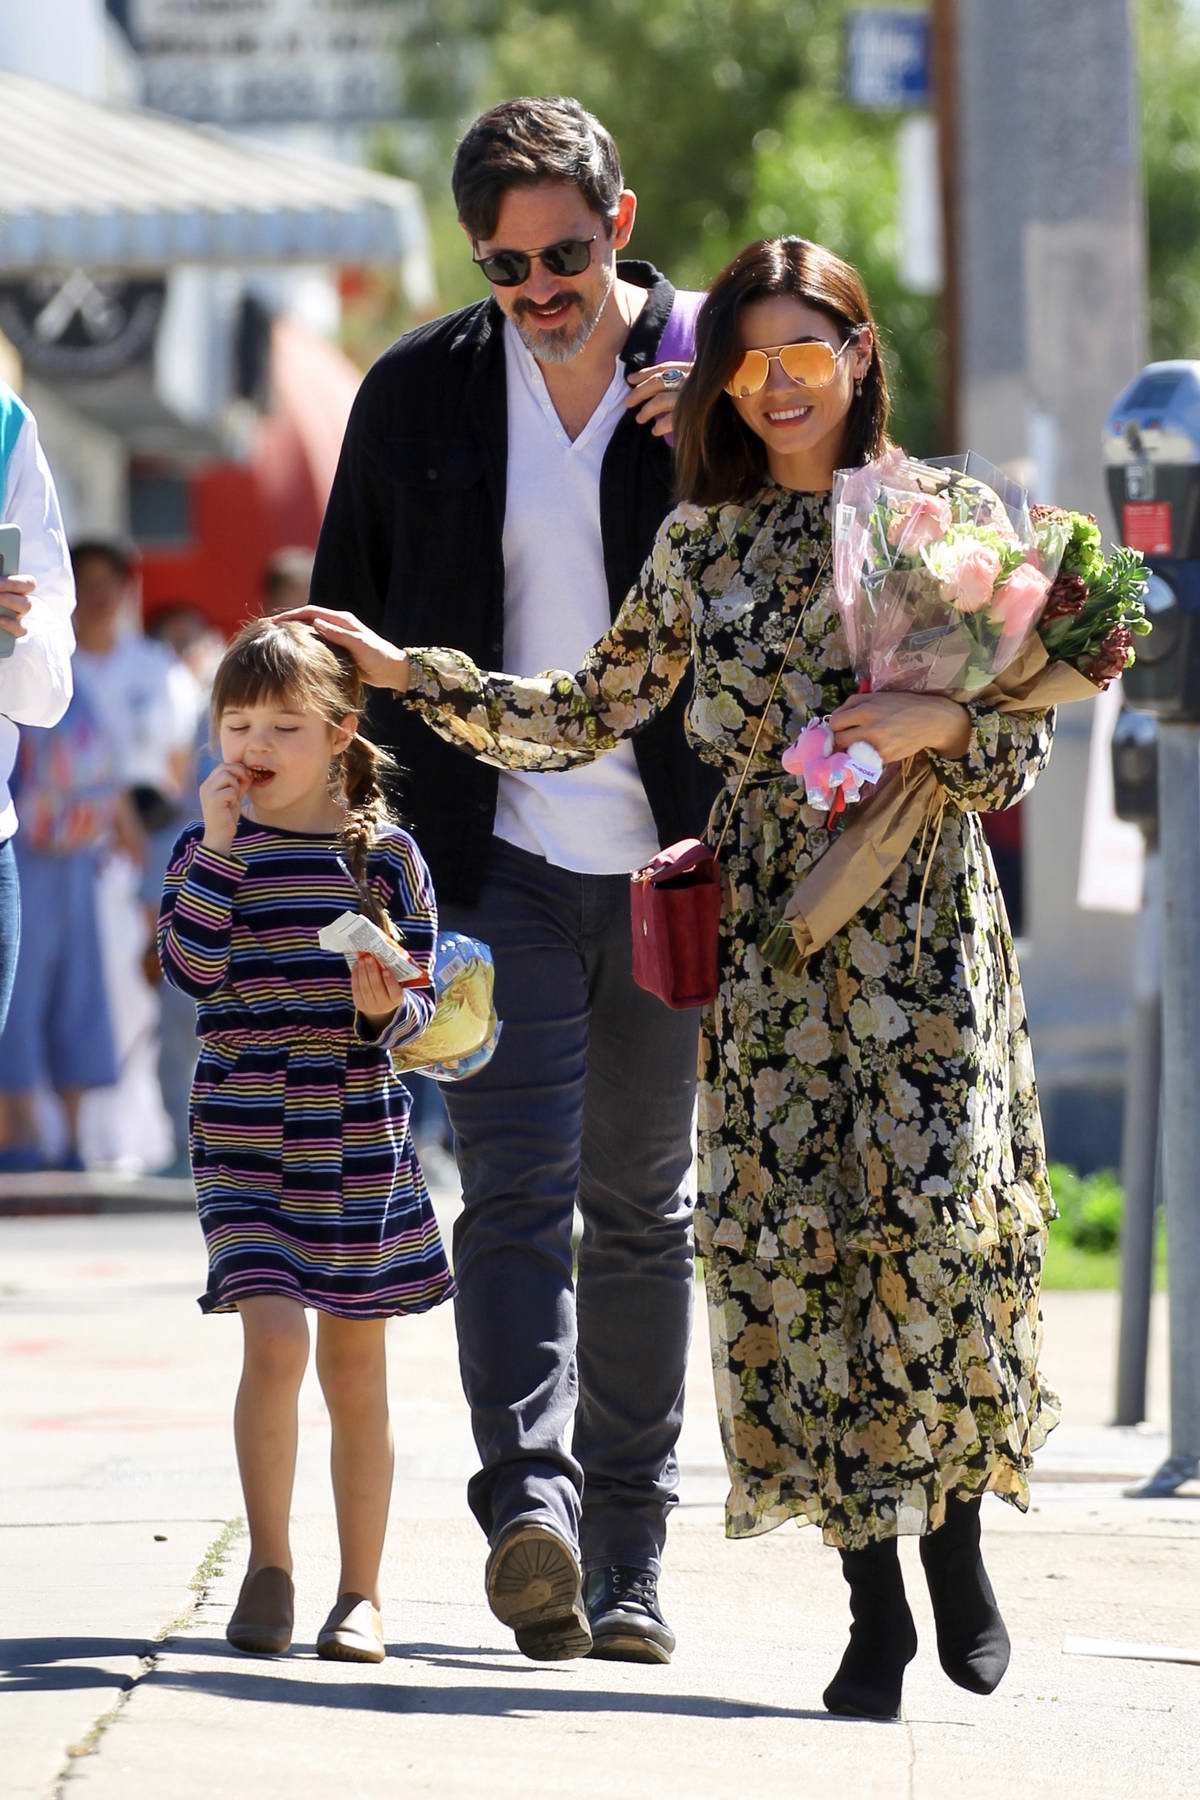 Jenna Dewan and her daughter step out for an afternoon walk with Steve Kazee in West Hollywood, Los Angeles